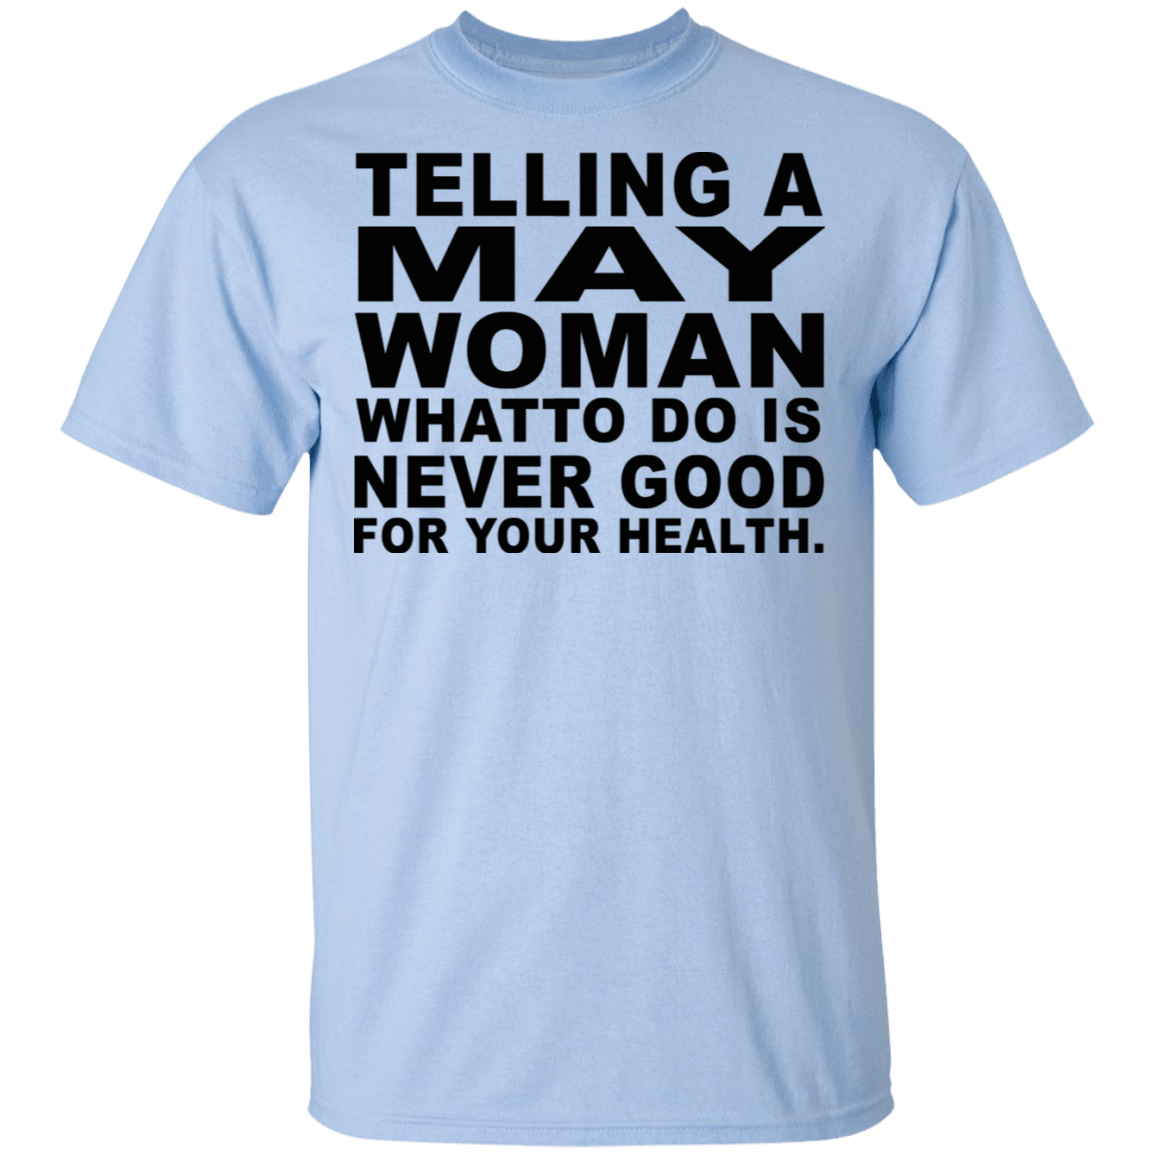 Telling A May Woman What To Do Is Never Good T-Shirts, Hoodies, Tank 22-9800-79463219-47430 - Tee Ript